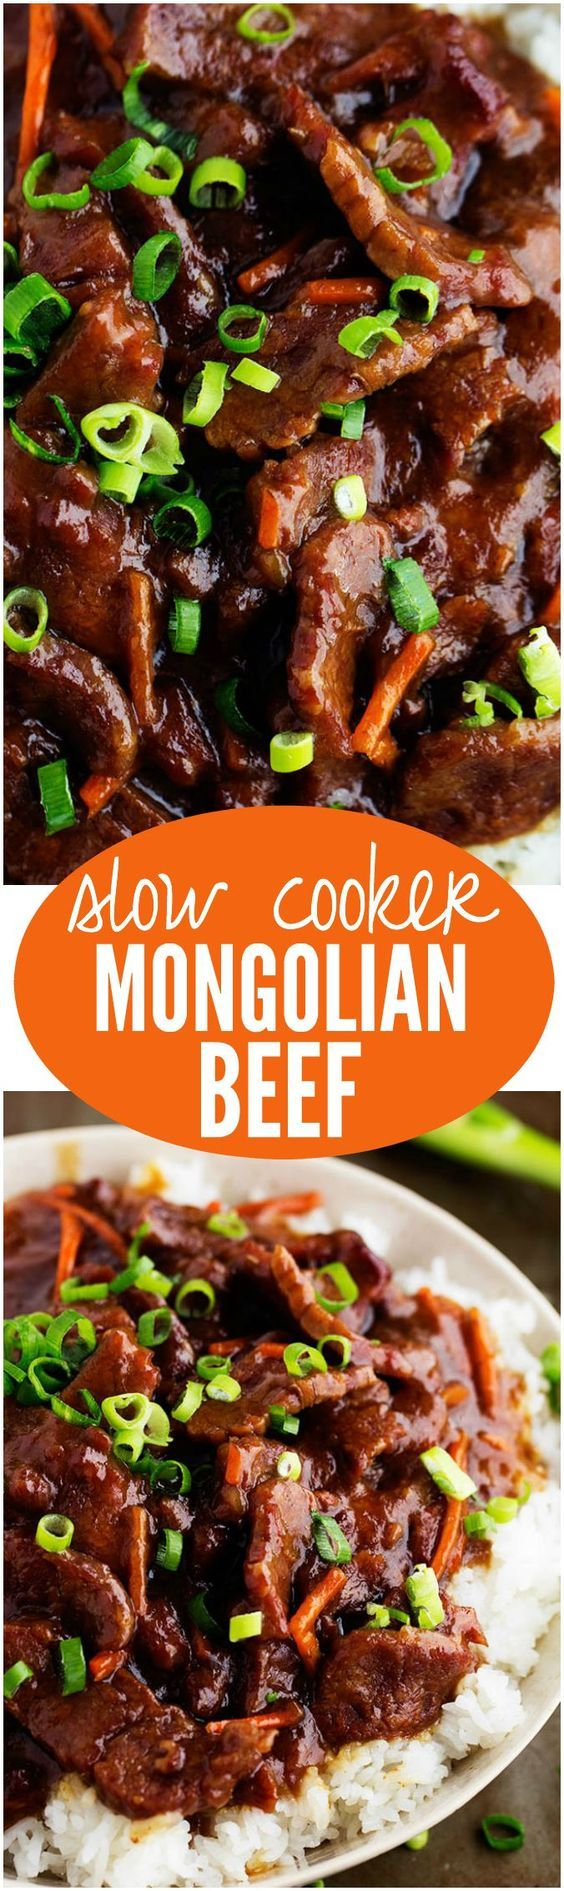 Slow Cooker Mongolian Beef Recipe plus 49 of the most pinned crock pot recipes